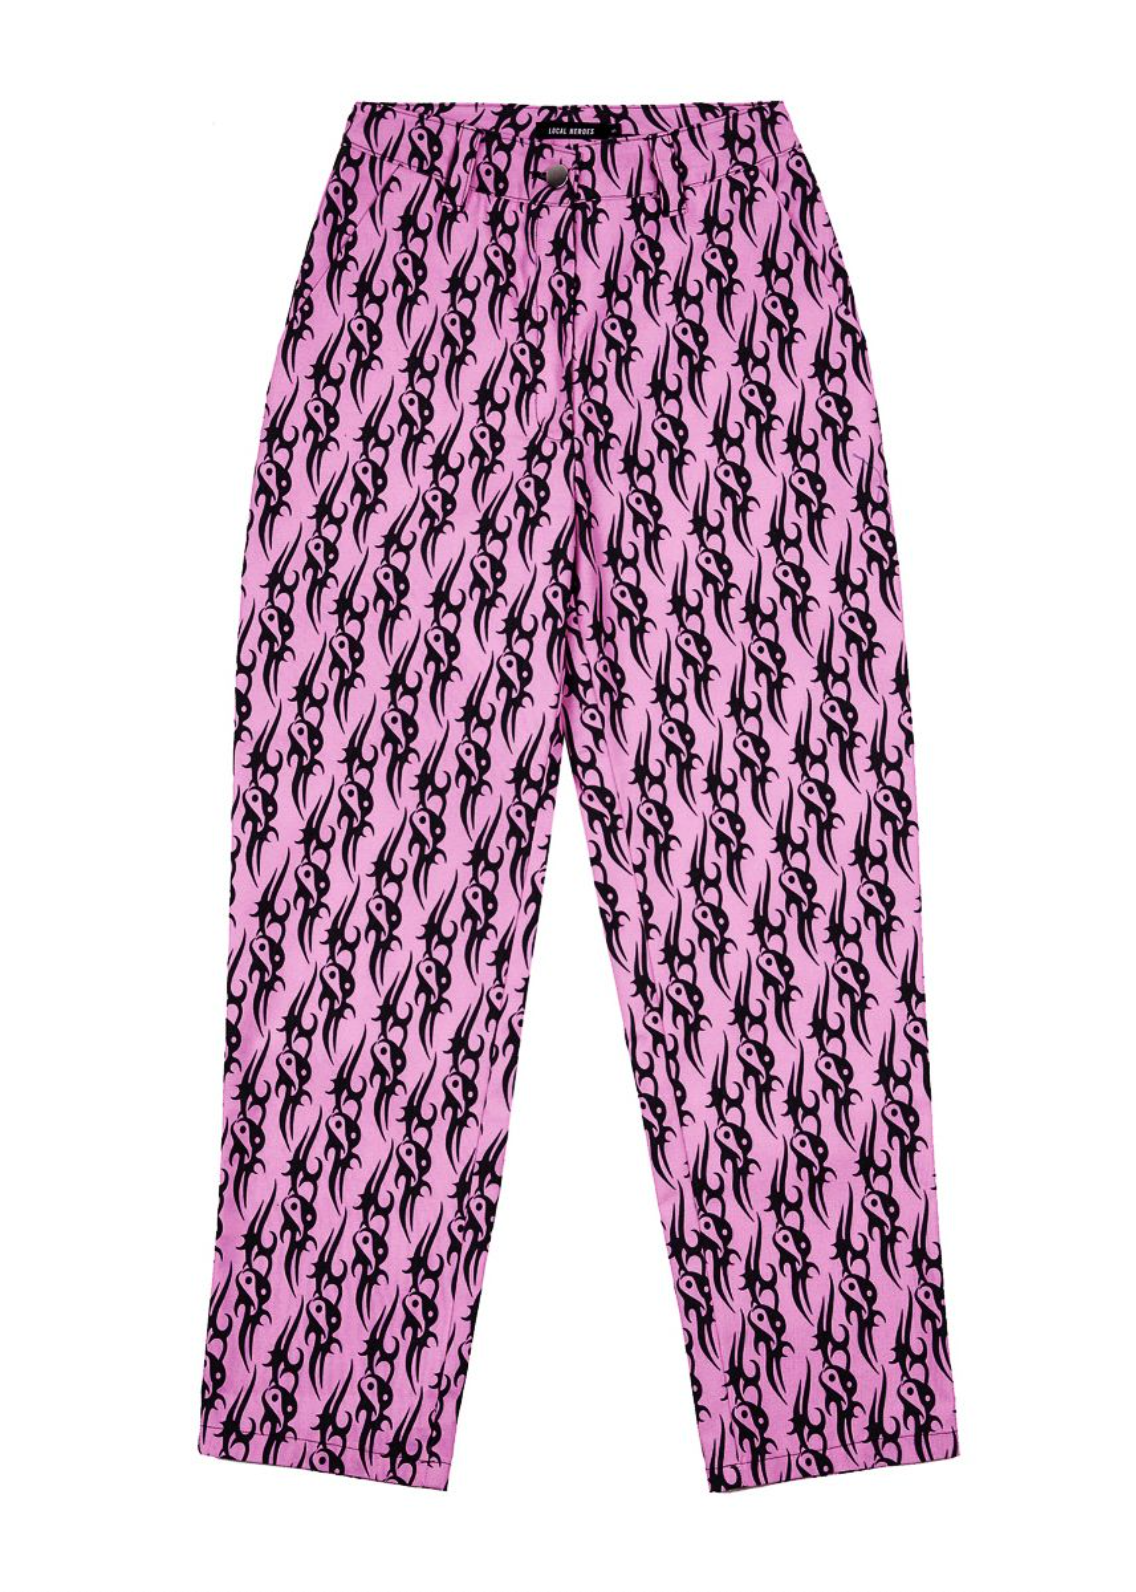 TRIBAL LOVE PANT - PINK